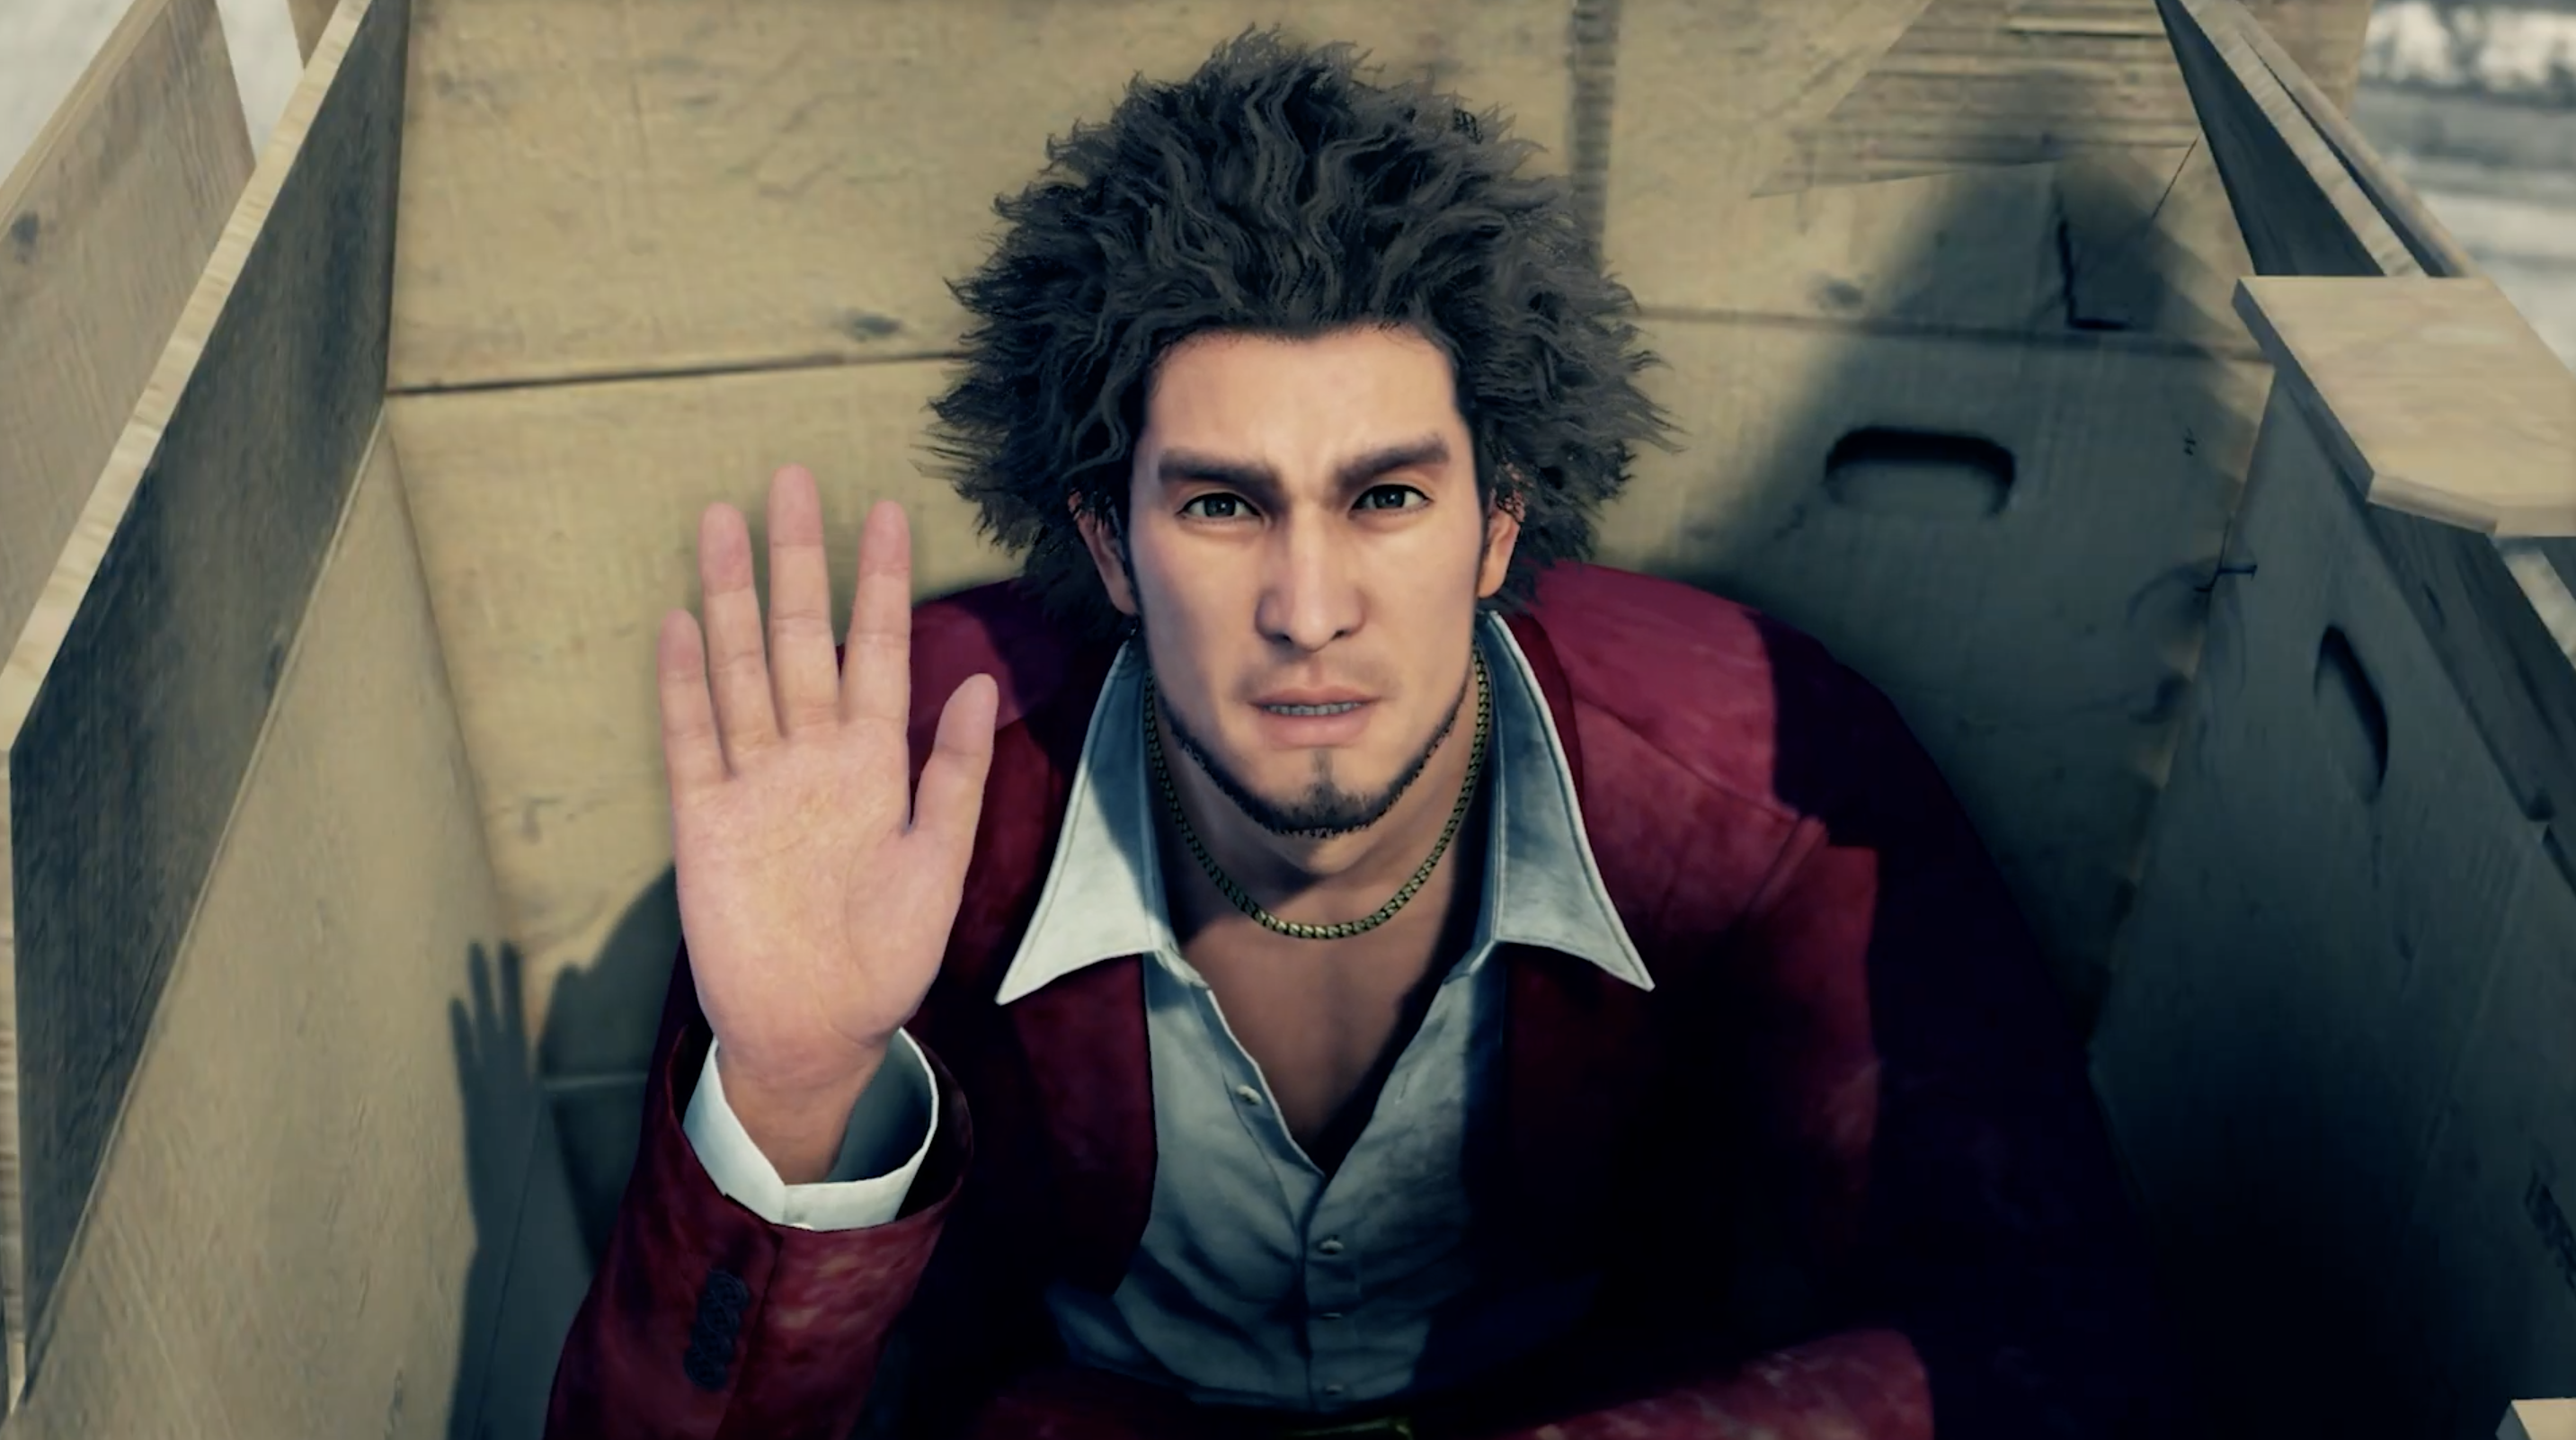 E3 2021: All of Yakuza is on Game Pass